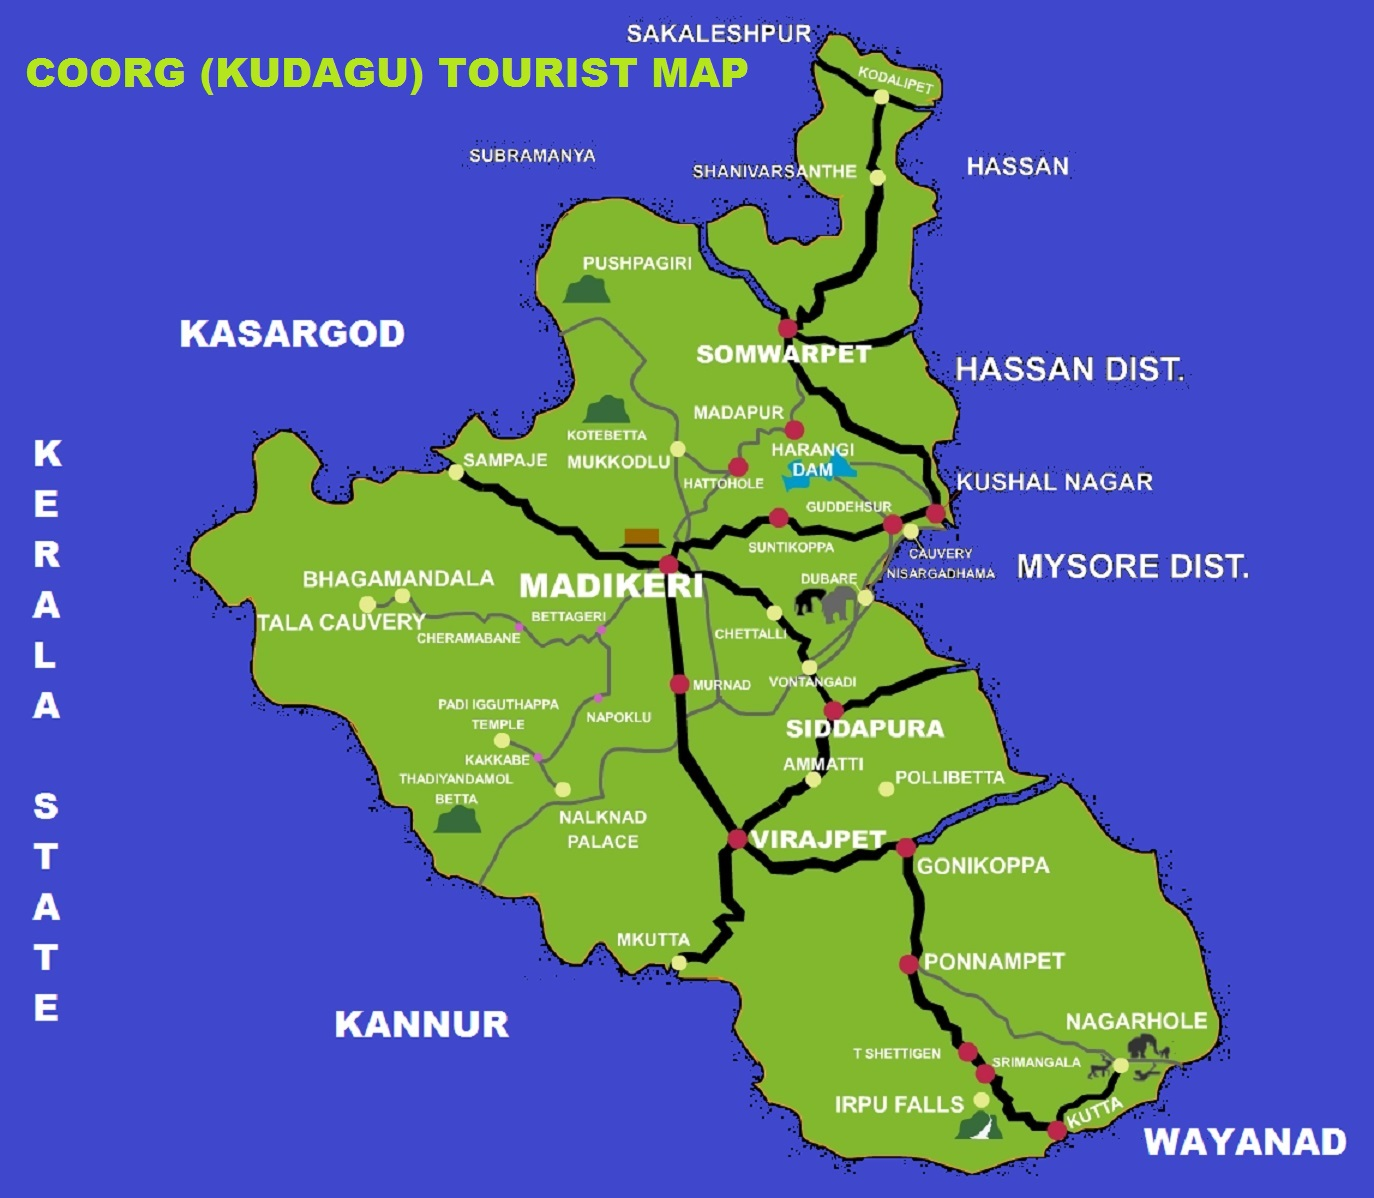 tourist map coorg kodagu madikeri attractions india south tourism touris